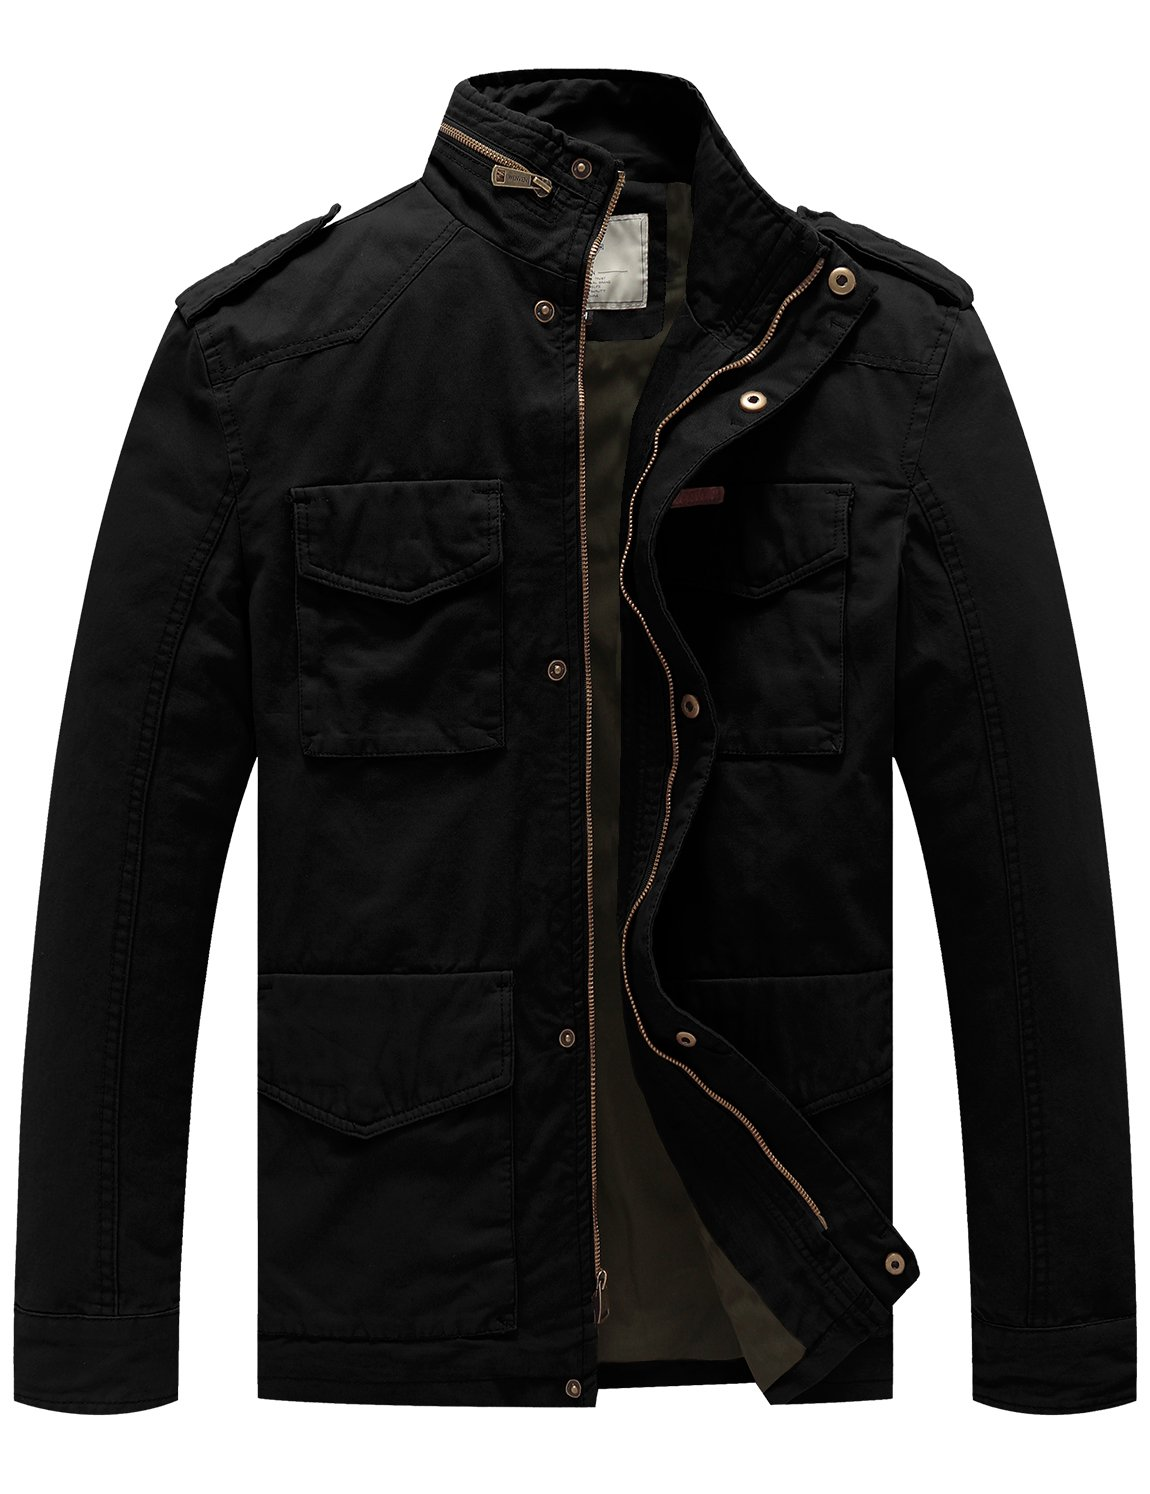 WenVen Men's Cotton Military Casual Stand Collar Field Jacket (Black, Large) by WenVen